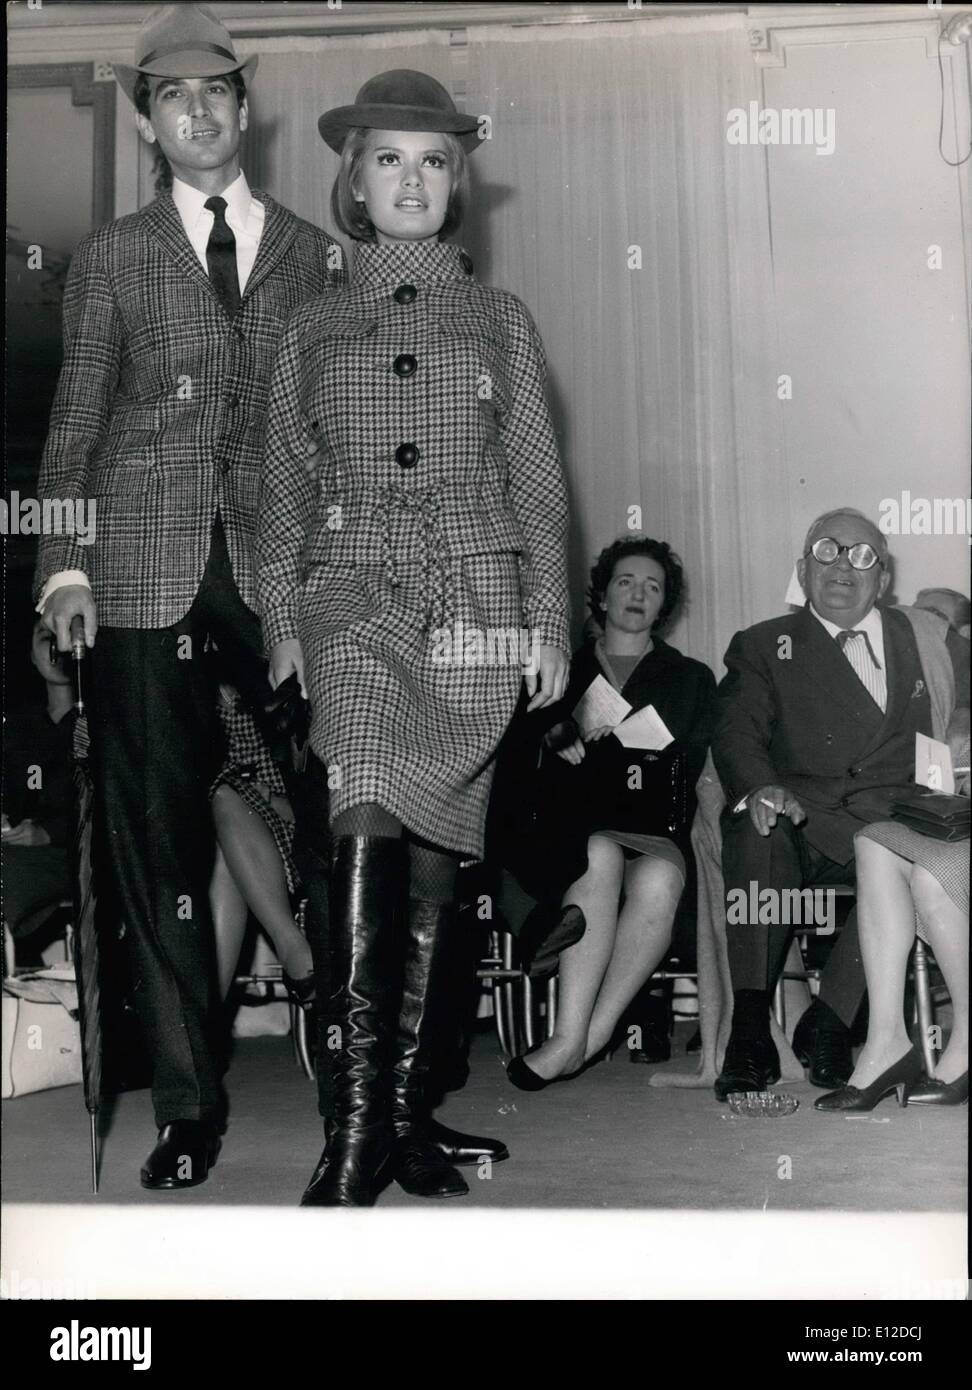 Dec. 19, 2011 - New Fashion Show For Men Under the admiring eye of author Marcel Achard, Pierre Cardin from Paris, presented his new collection for men for the coming season. OPS: For HIM and For HER, ensemble ''Air-France' - Stock Image